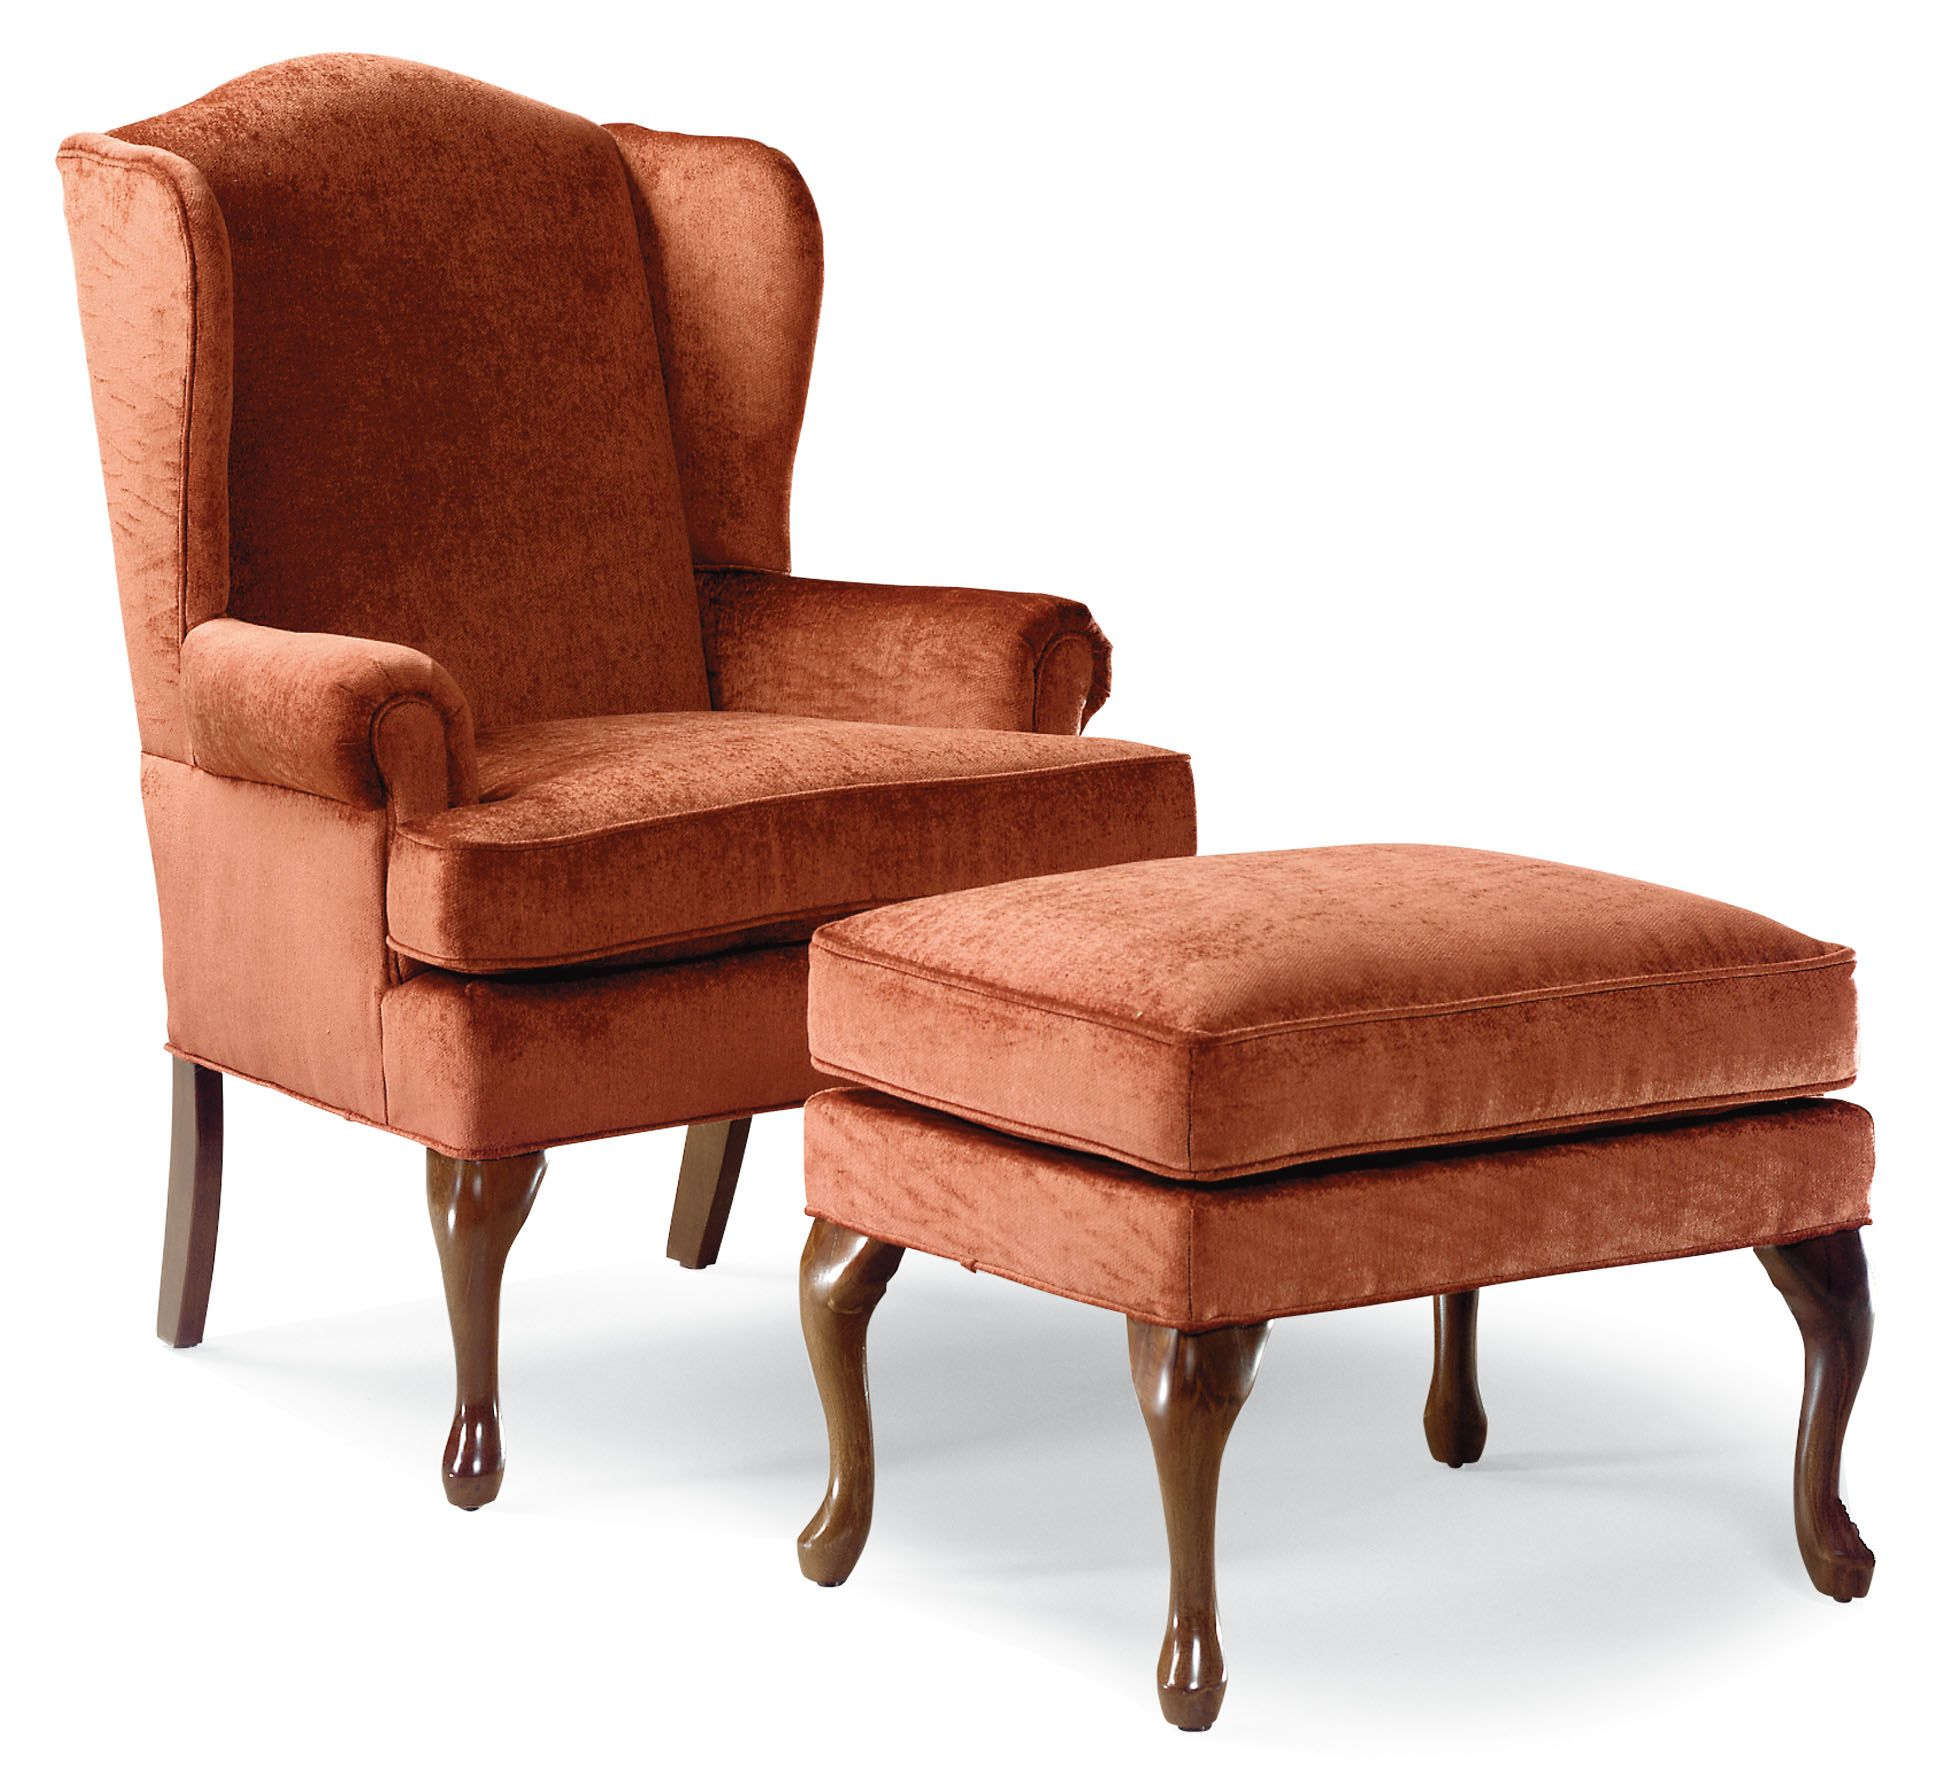 Shop For The Fairfield Chairs Wing Chair U0026 Ottoman At Stuckey Furniture    Your Mt. Pleasant, Bluffton, And Stuckey, South Carolina Furniture U0026  Mattress ...